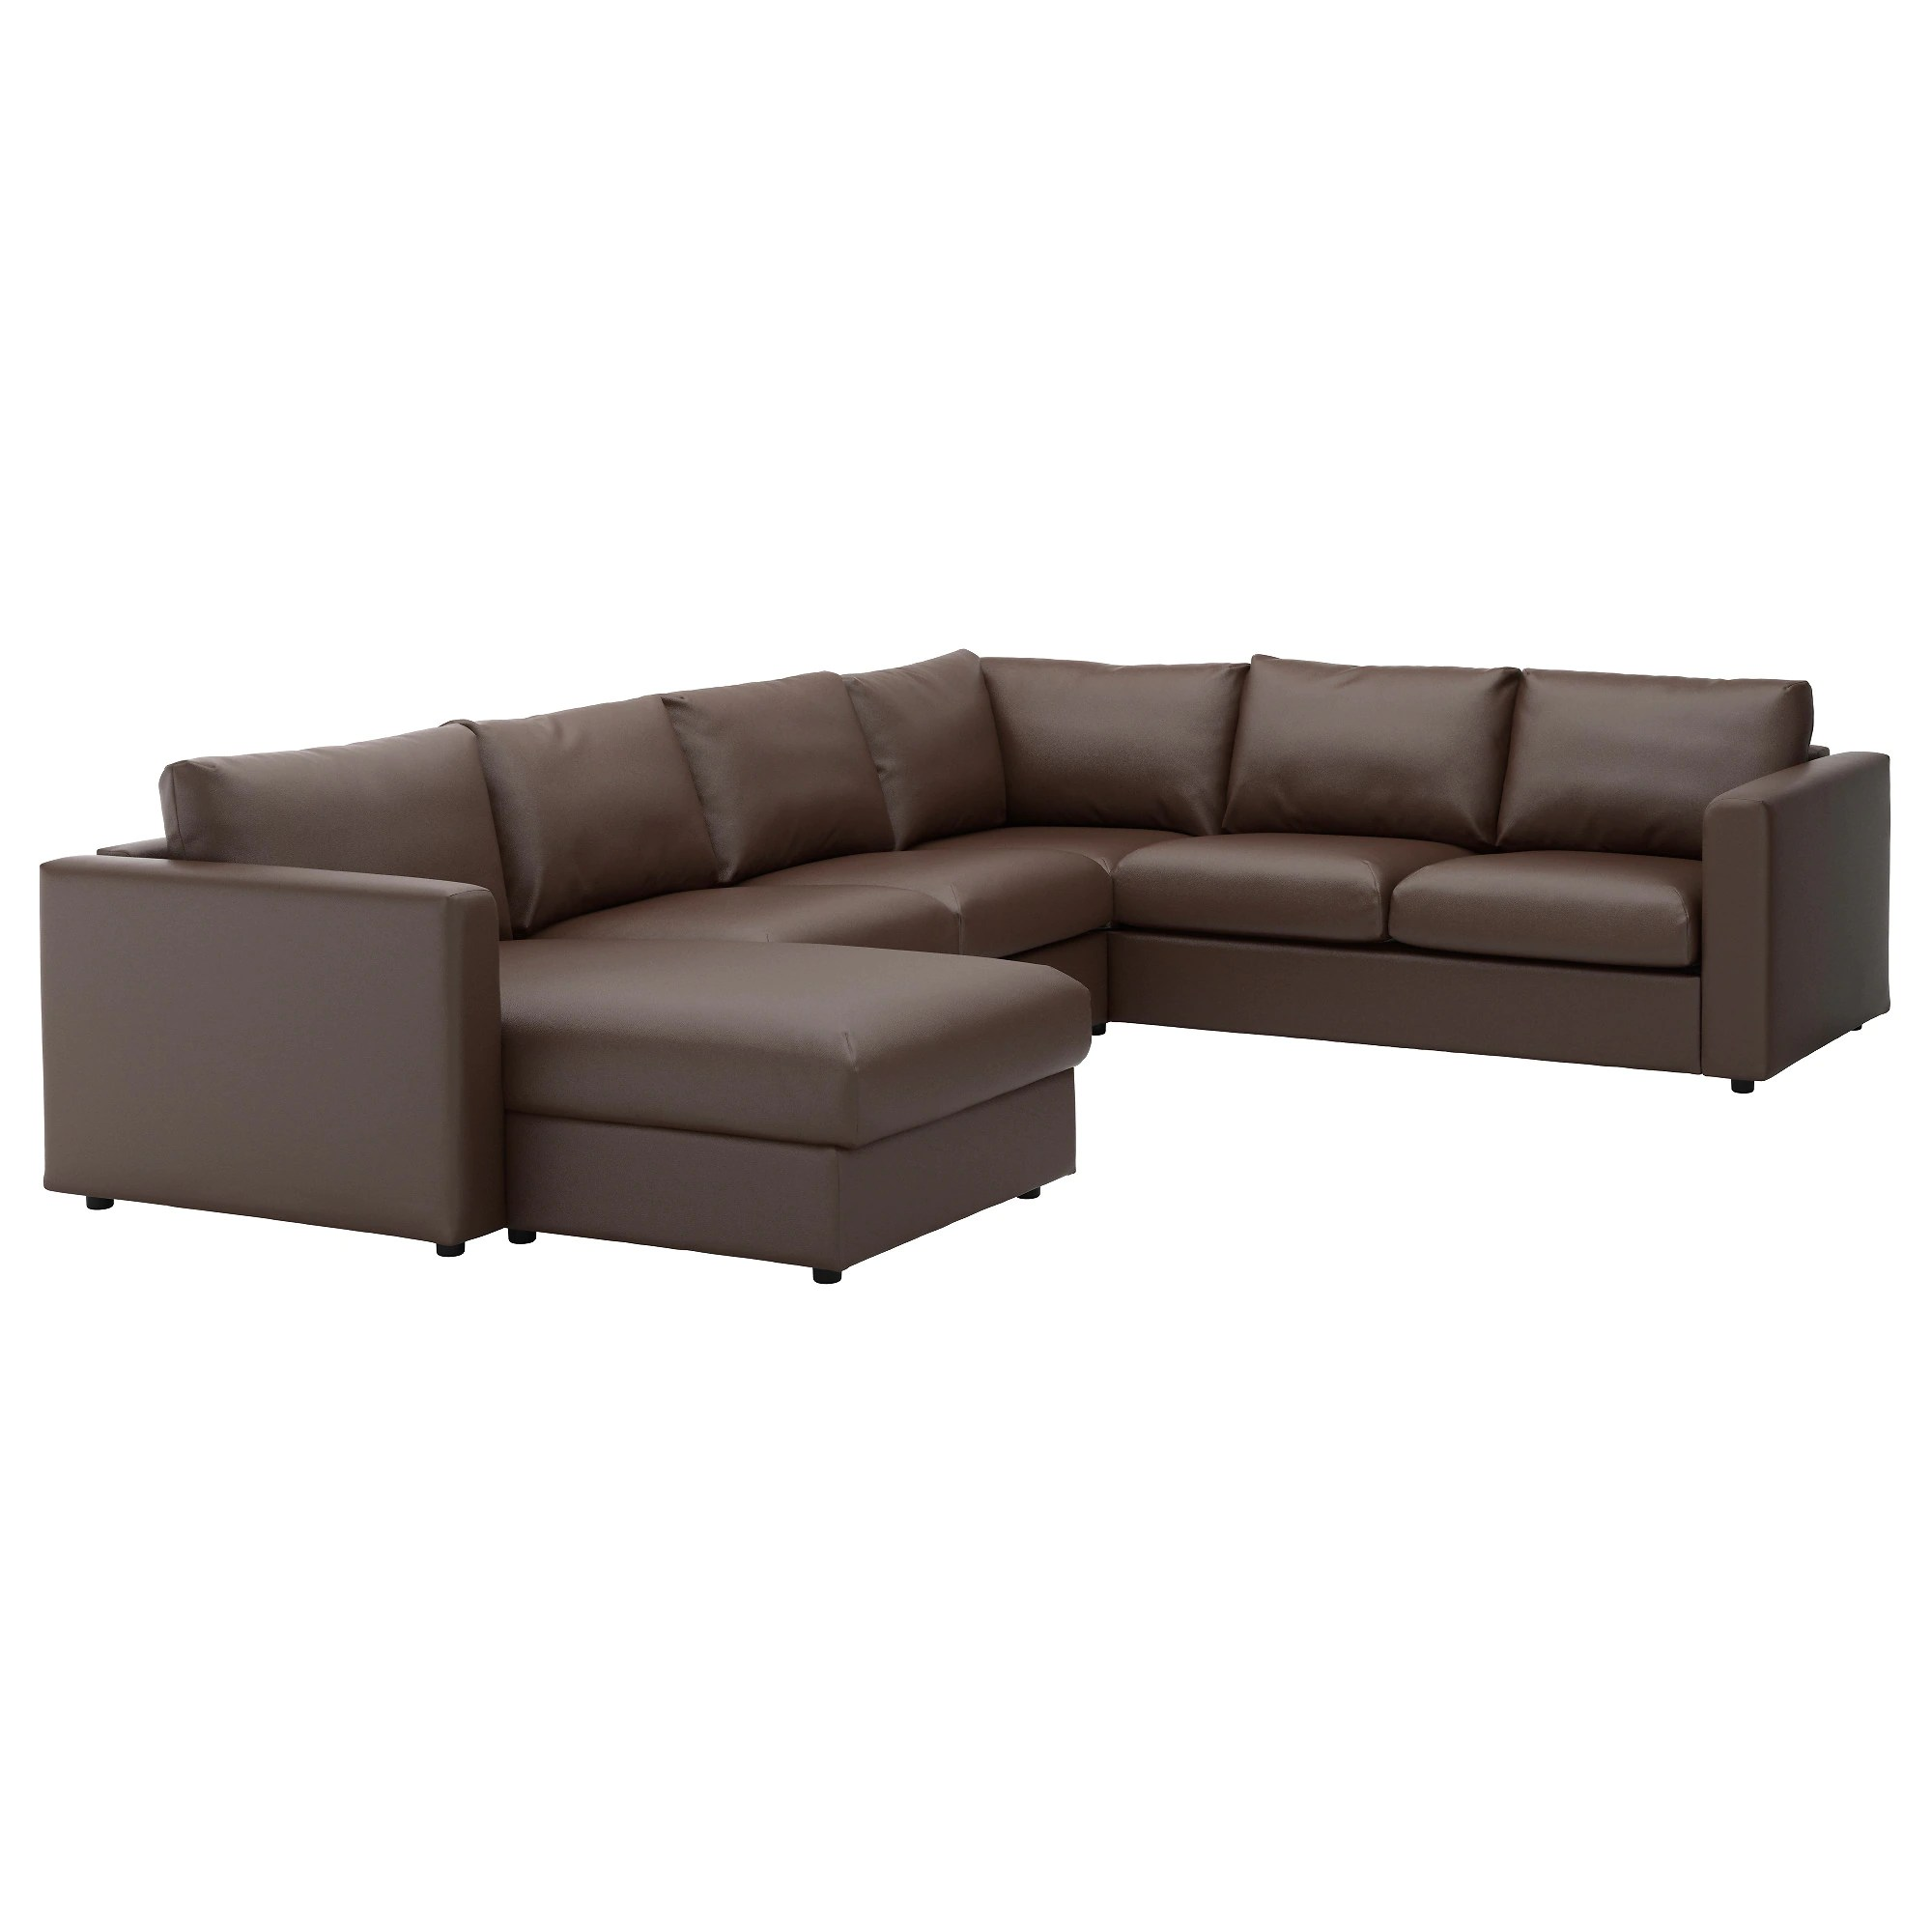 Vimle Sofa Ikea Dubai Corner Sofa 5 Seat Vimle With Chaise Longue Farsta Dark Brown